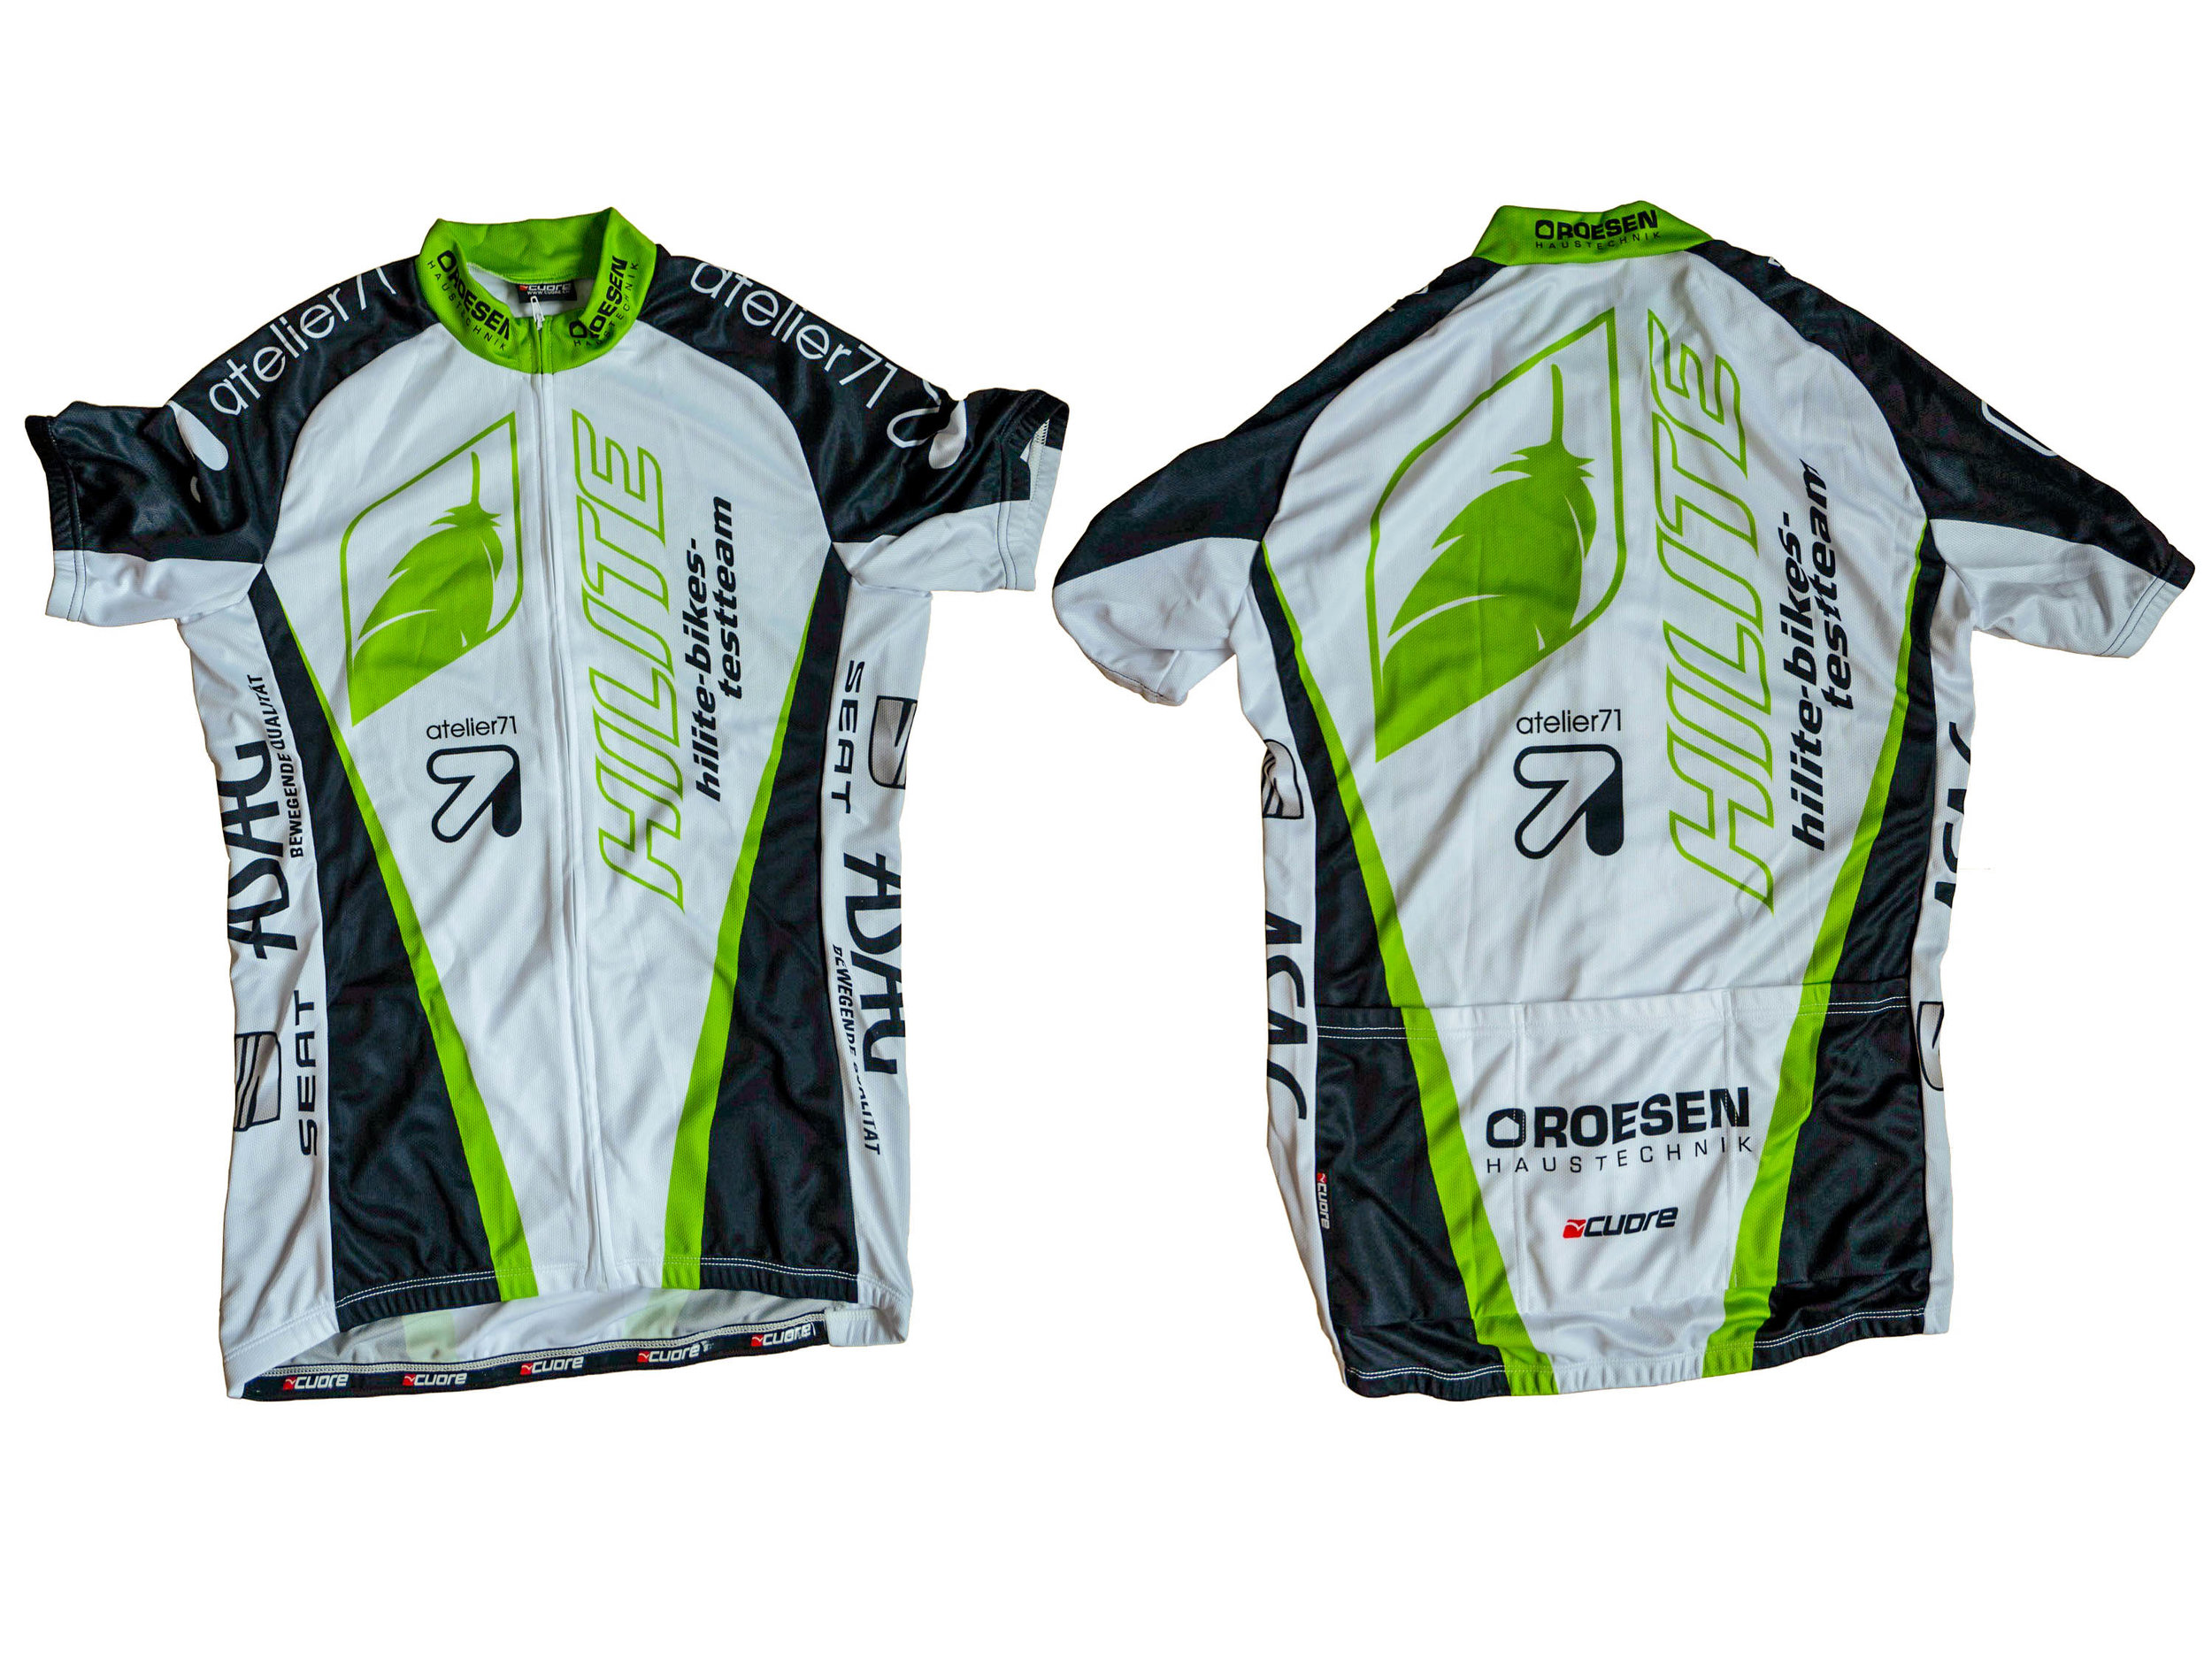 Hilite-Bikes bicycle jersey